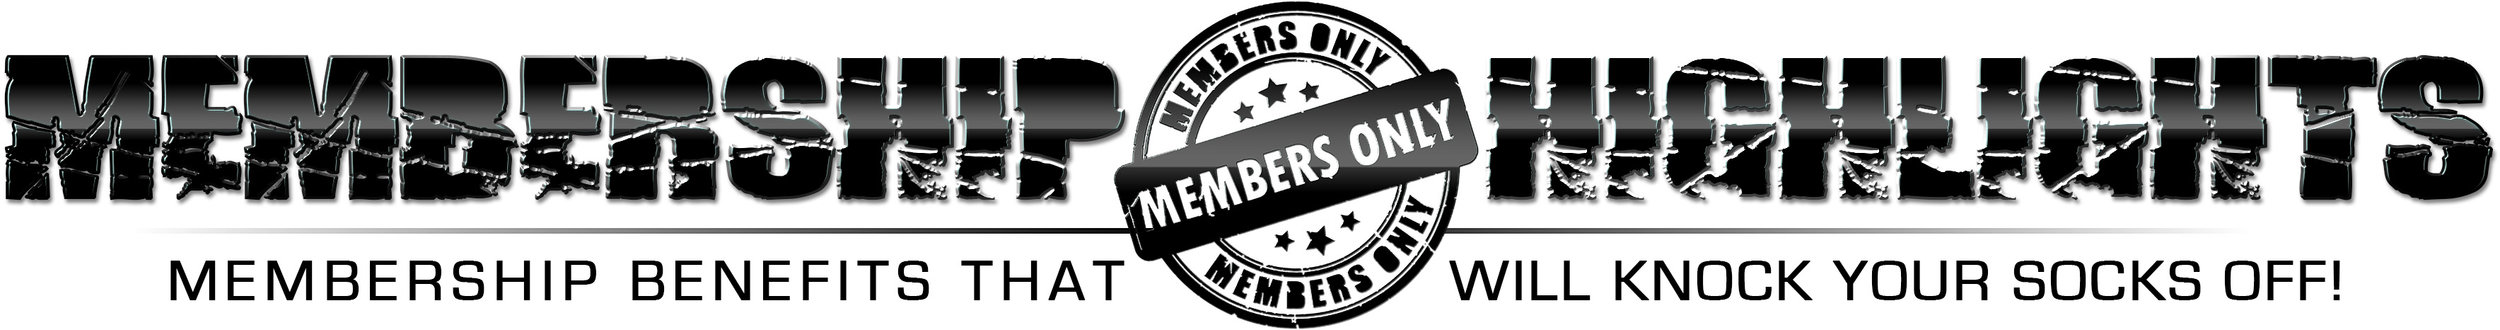 Membership Highlights - Training Redefined (AHP).jpg